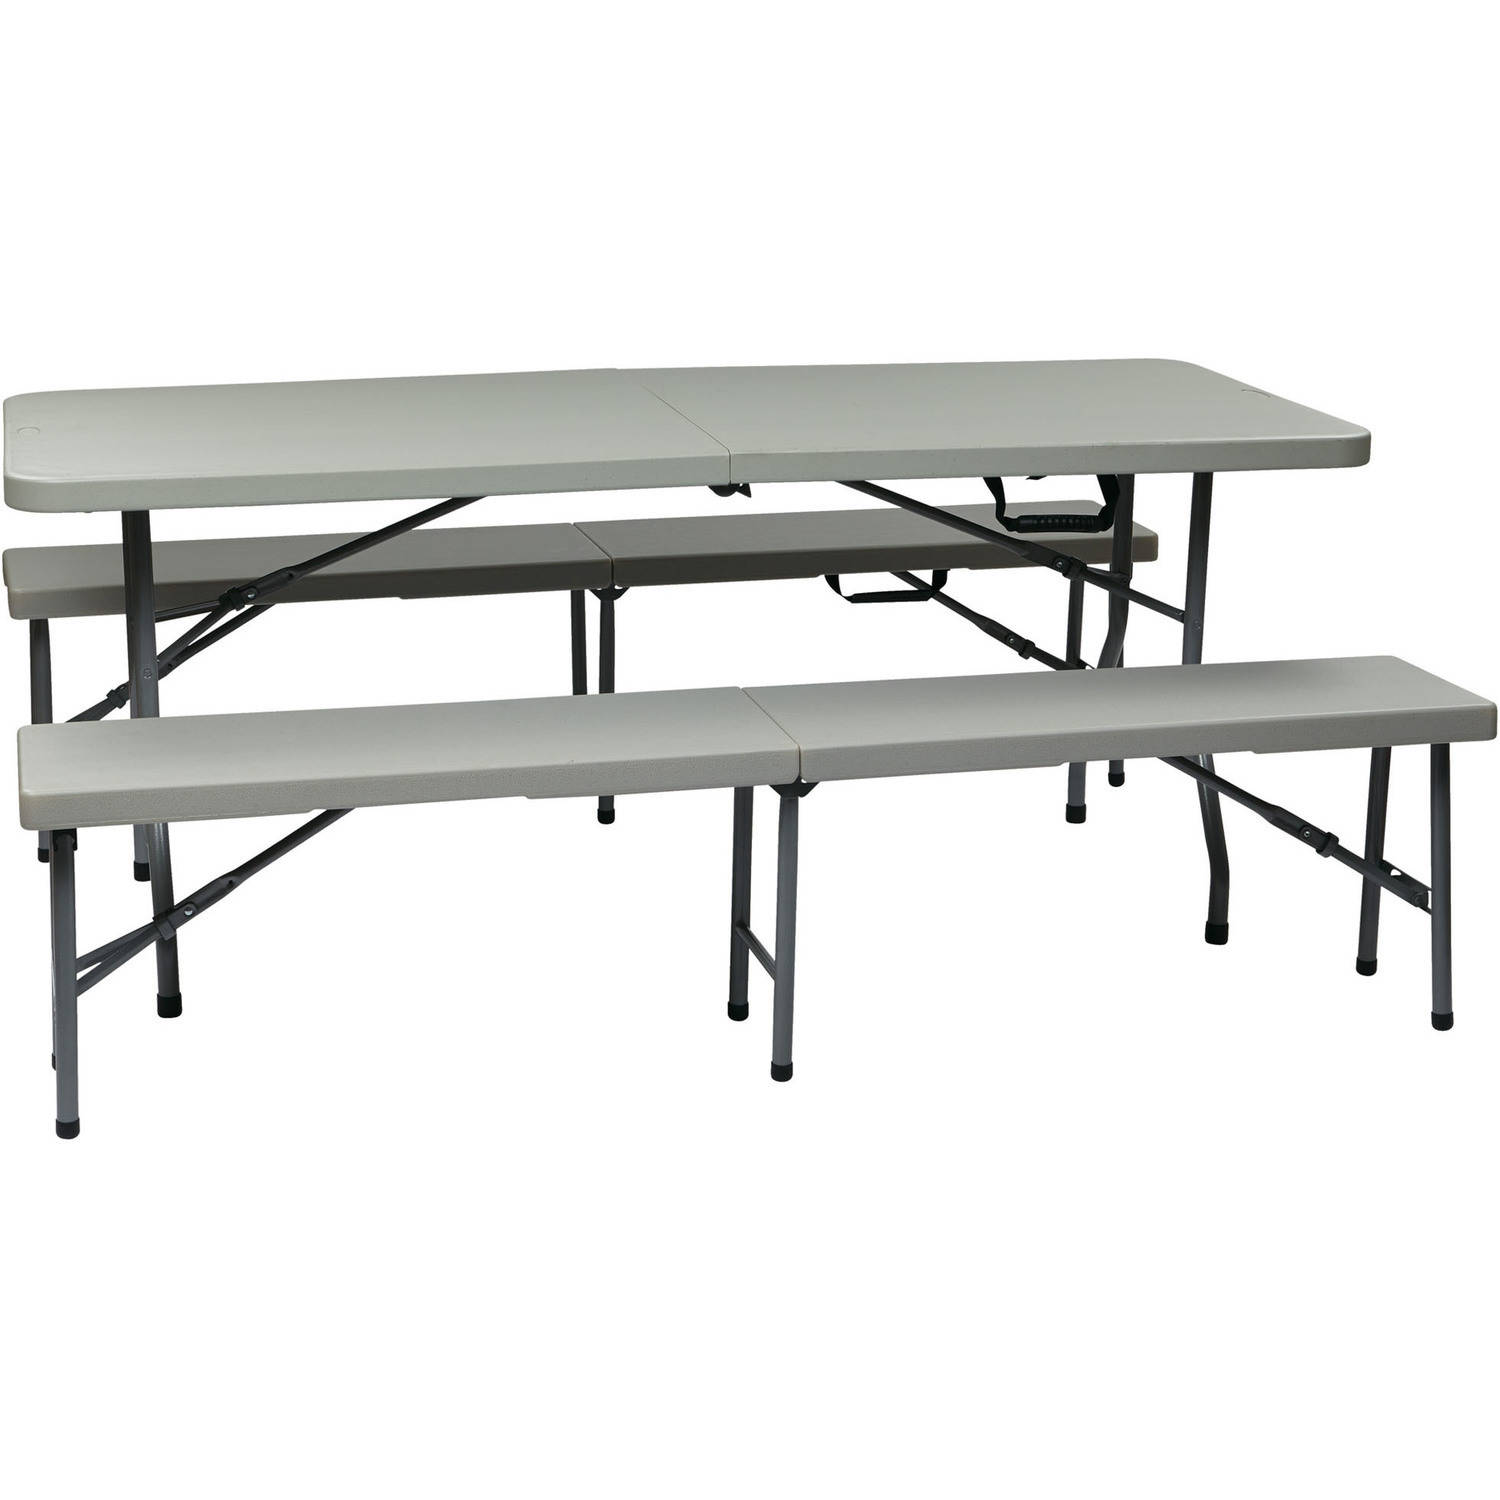 3-Piece Folding Table and Bench Set by Office Star Products